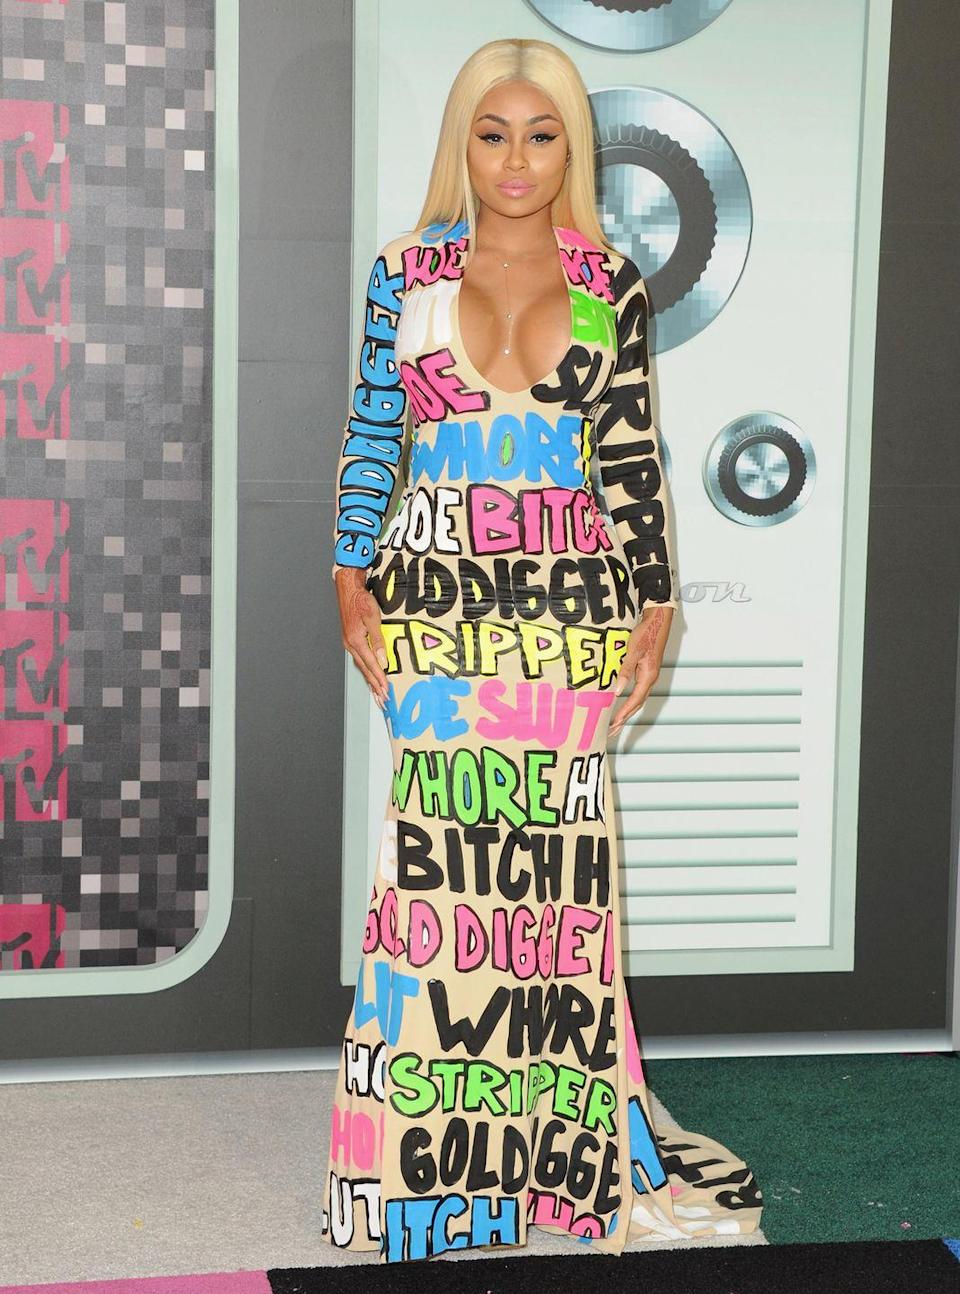 """<p>Model Blac Chyna appeared at the VMAs in 2015 wearing a dress emblazoned with words like """"whore"""" and """"gold digger."""" Fellow model Amber Rose wore a matching suit. Blac Chyna explained in a <a href=""""https://www.washingtonpost.com/news/arts-and-entertainment/wp/2015/08/30/the-story-behind-amber-rose-and-blac-chynas-slut-dresses-at-the-vmas/"""" rel=""""nofollow noopener"""" target=""""_blank"""" data-ylk=""""slk:red carpet interview"""" class=""""link rapid-noclick-resp"""">red carpet interview</a>, """"[We] basically wanted to paint a picture of what everybody, kind of like, already says about us.""""</p>"""